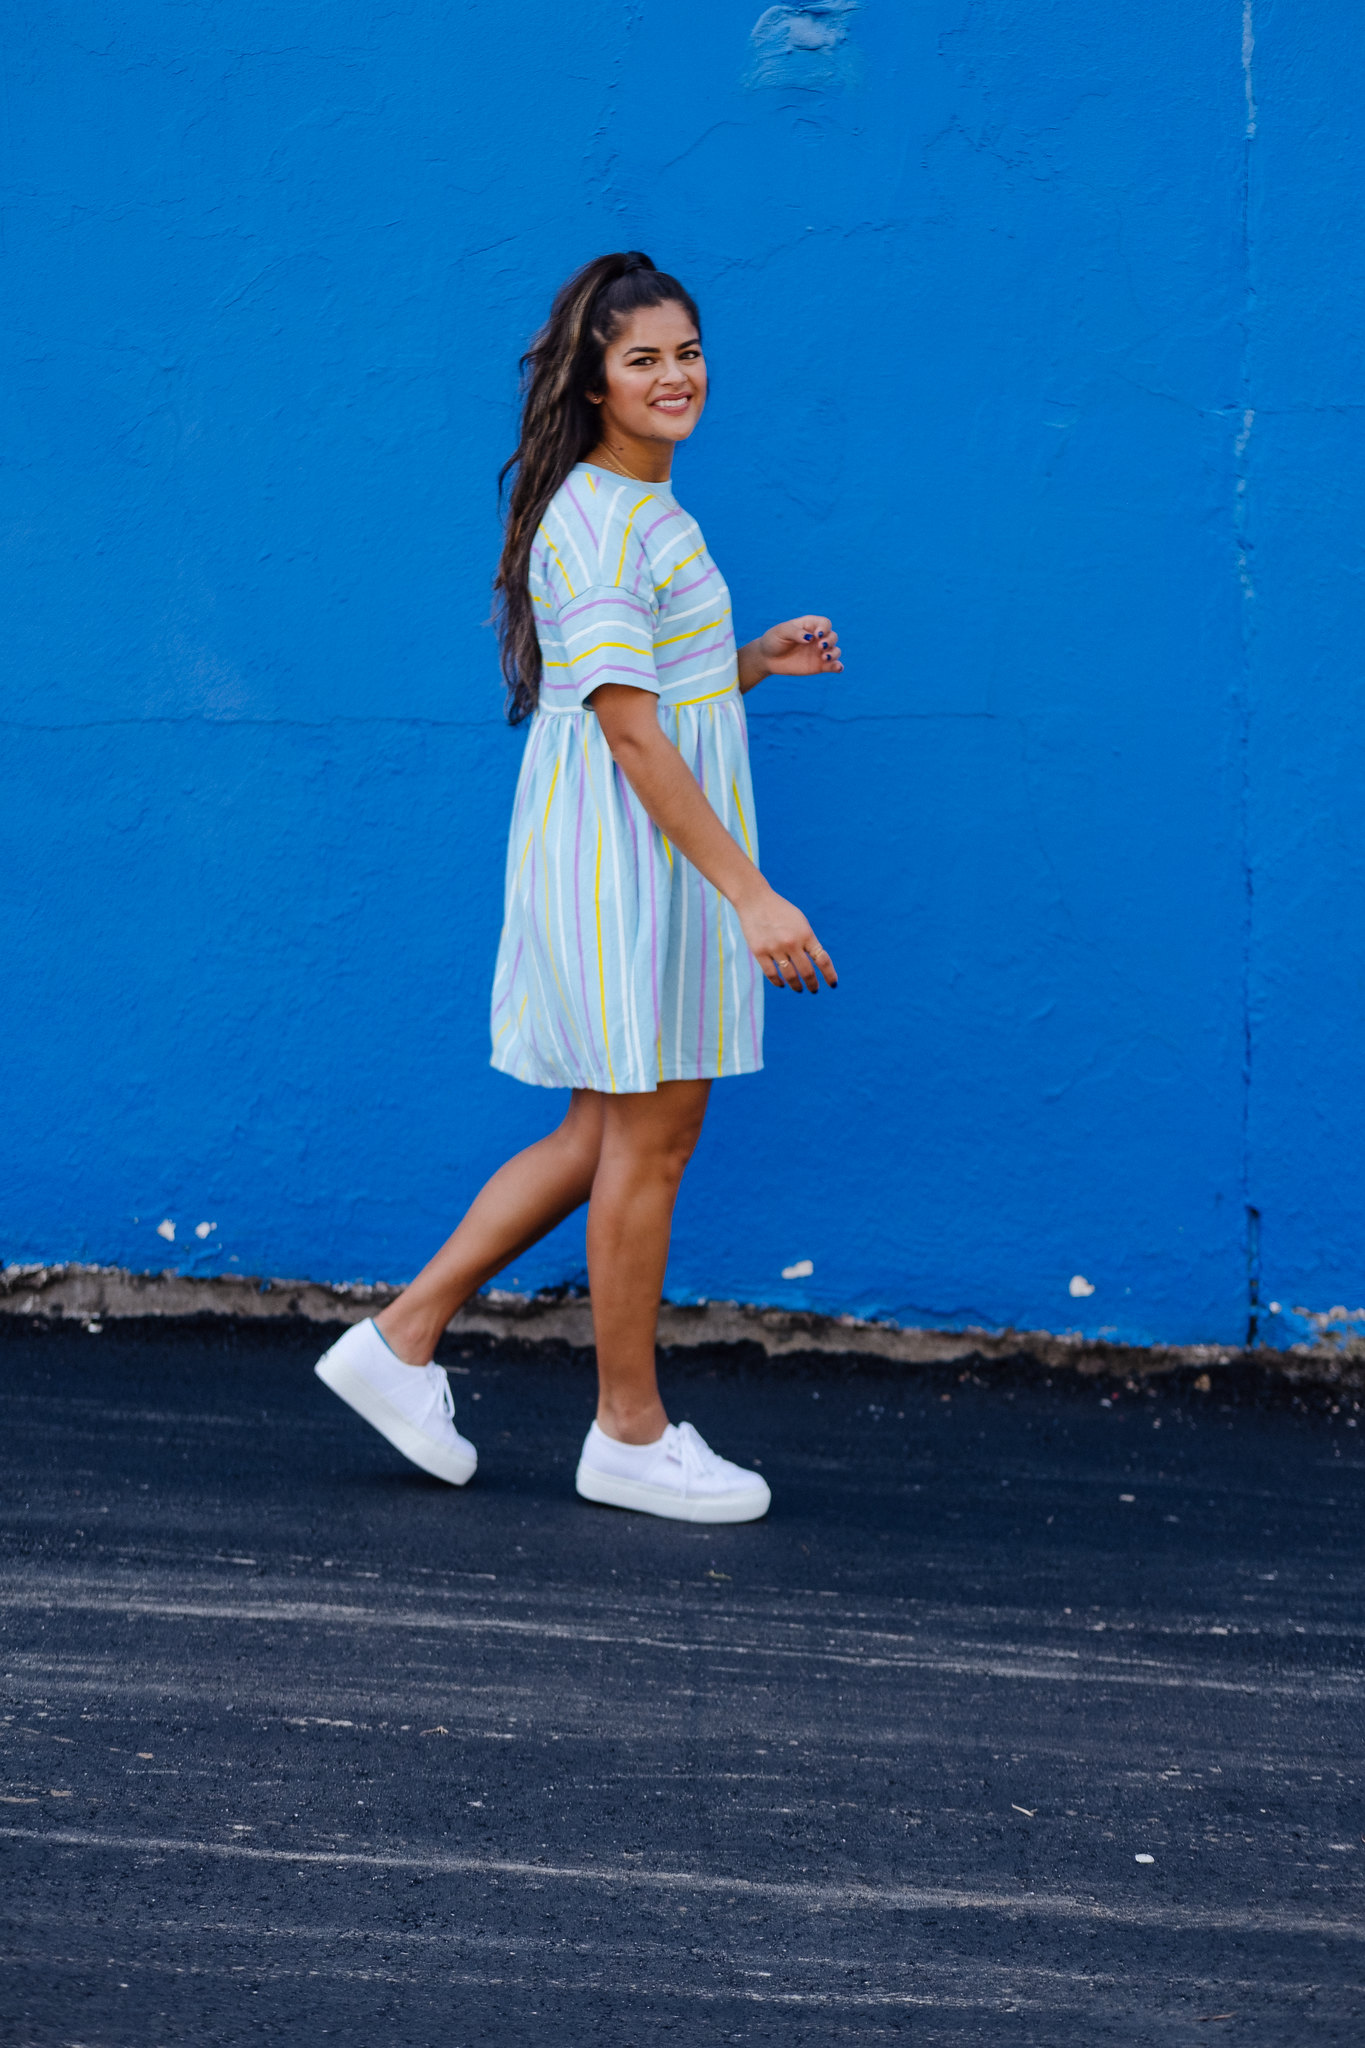 Fall 2018 outfit idea, Priya the Blog, Nashville fashion blog, Nashville fashion blogger, Nashville style blog, Nashville style blogger, platform Supergas, platform Superga trainers, smock dress for Fall, babydoll dress for Fall, babydoll dress with platform sneakers, how to wear platform sneakers, Fall outfit with babydoll dress, ASOS smock dress